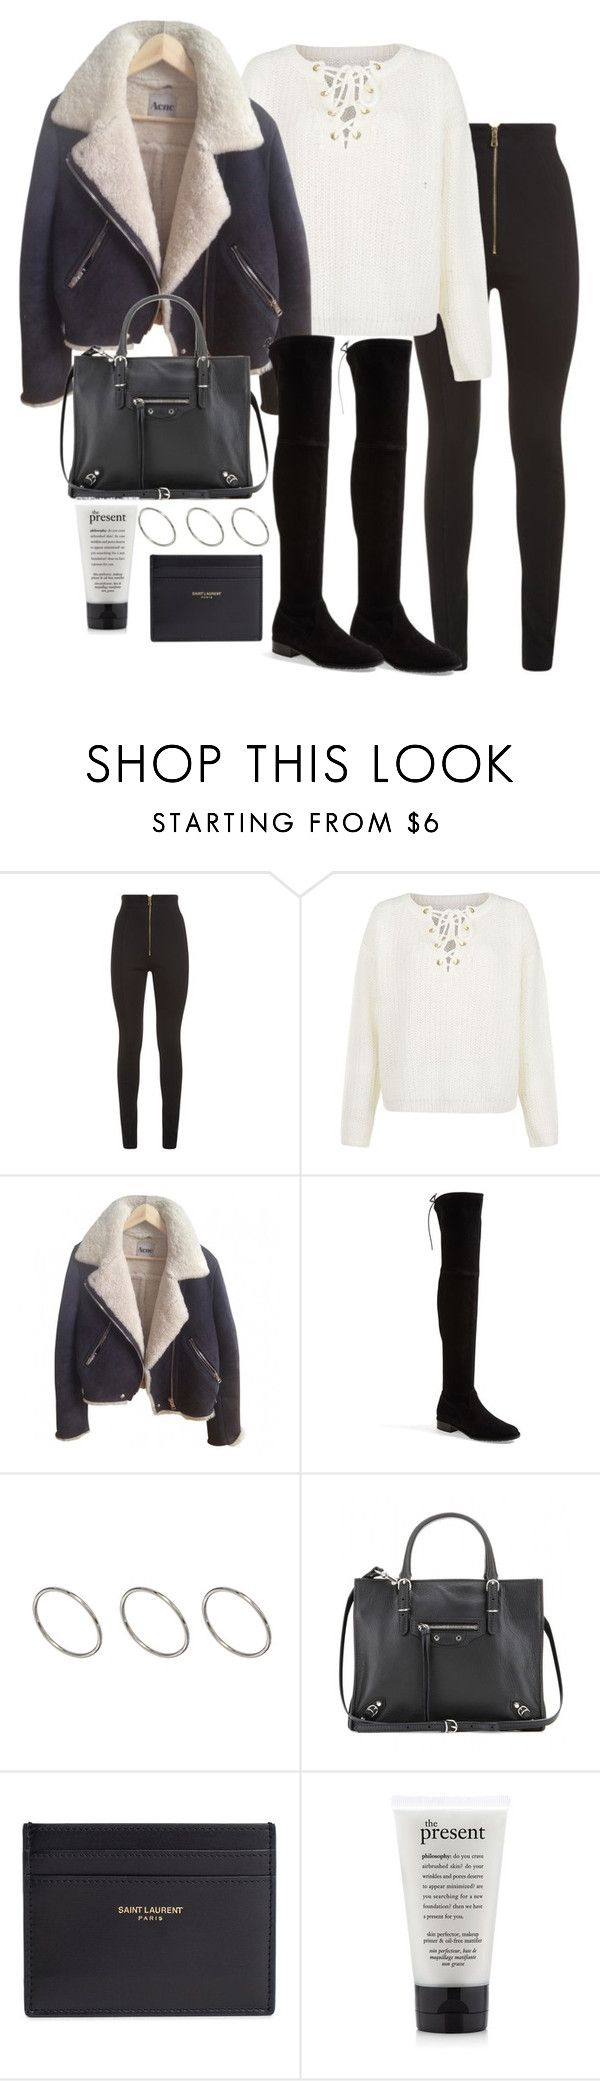 """""""Untitled #2735"""" by theeuropeancloset ❤ liked on Polyvore featuring Balmain, First & I, Stuart Weitzman, ASOS, Balenciaga and Yves Saint Laurent"""